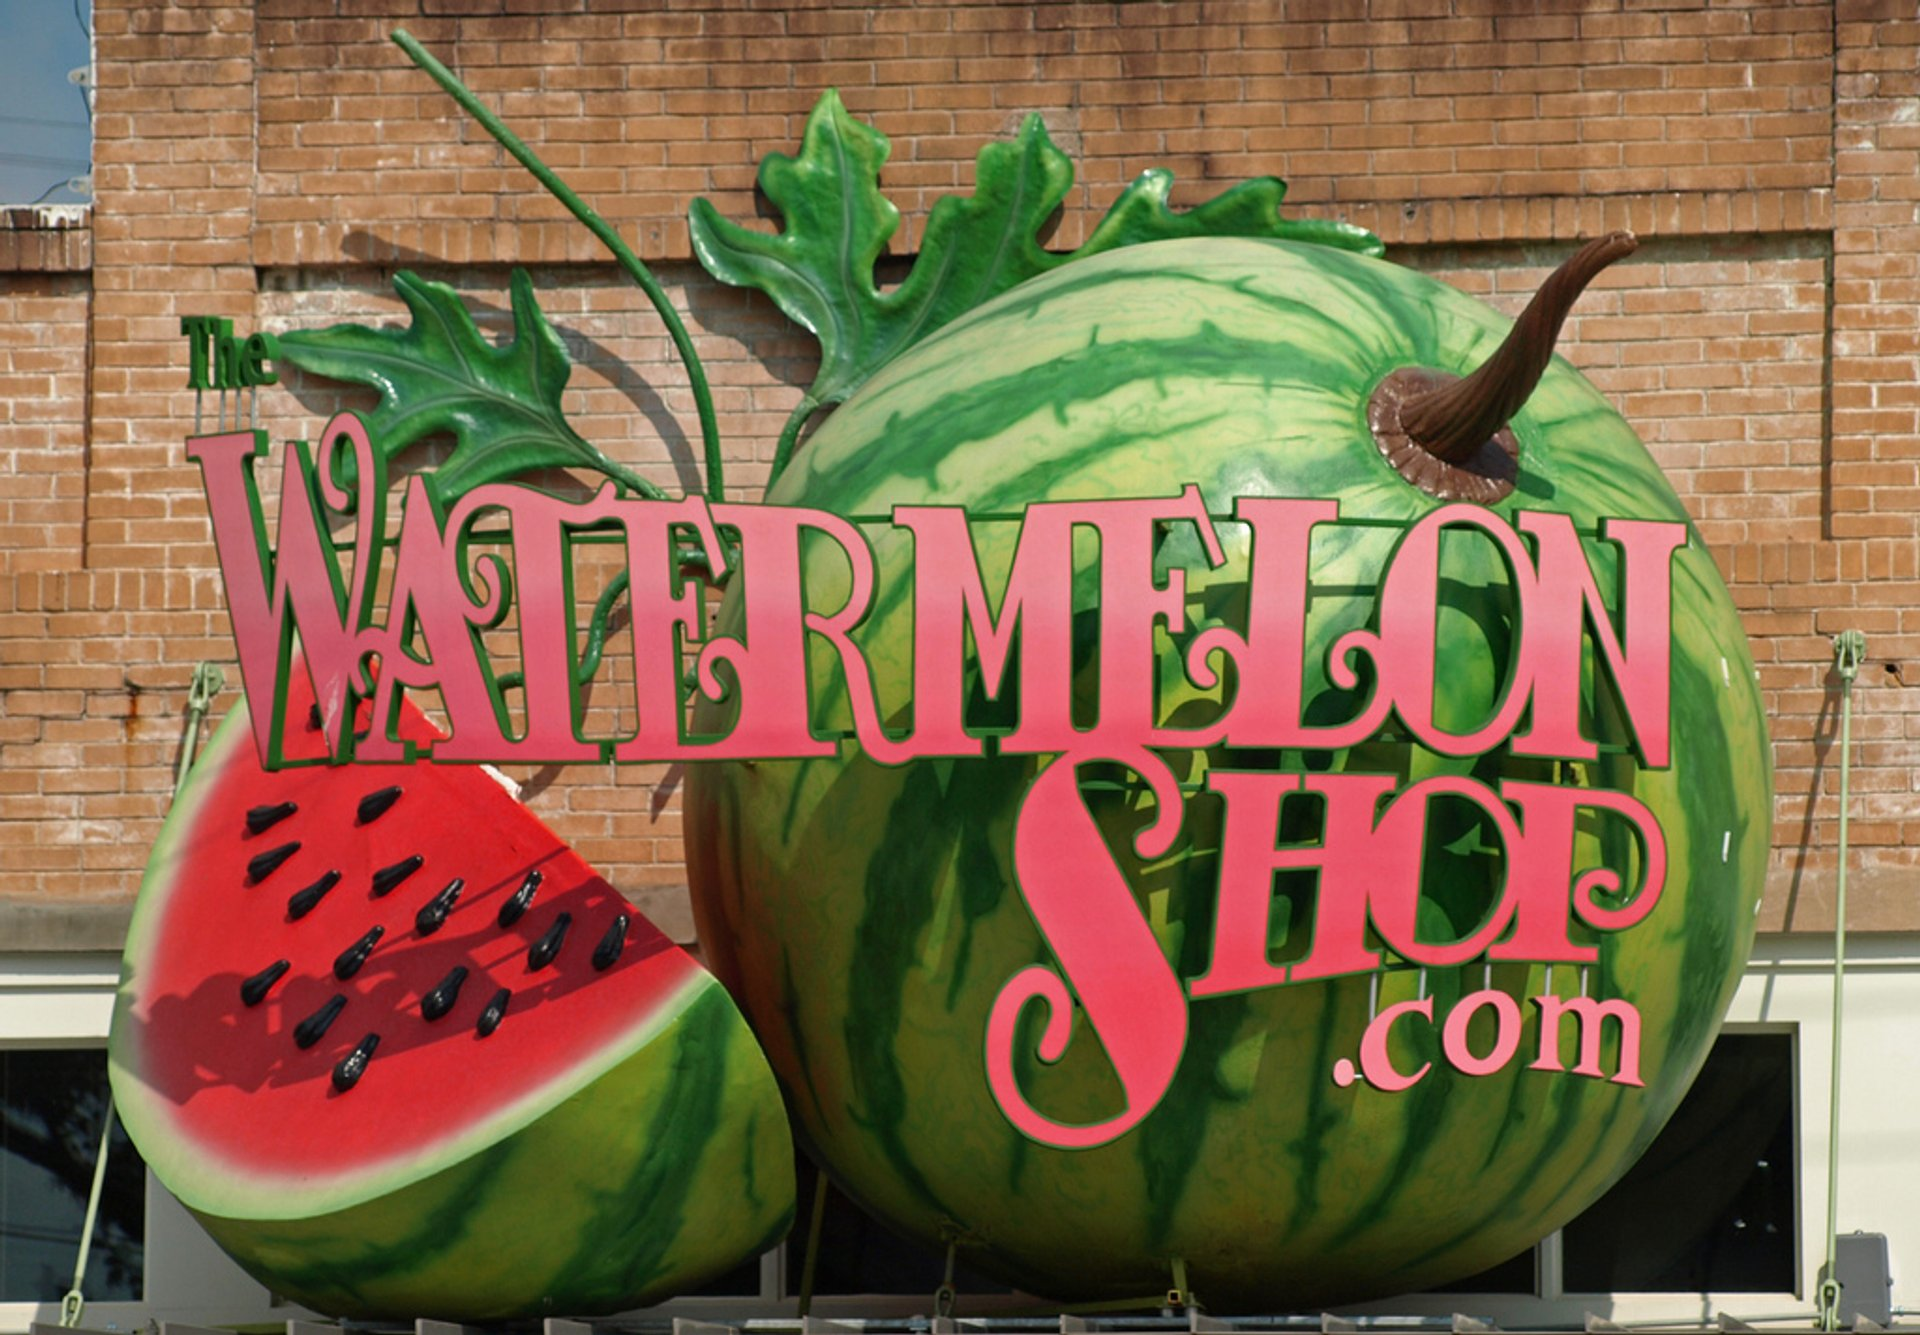 Luling, Watermelon capital of Texas 2019